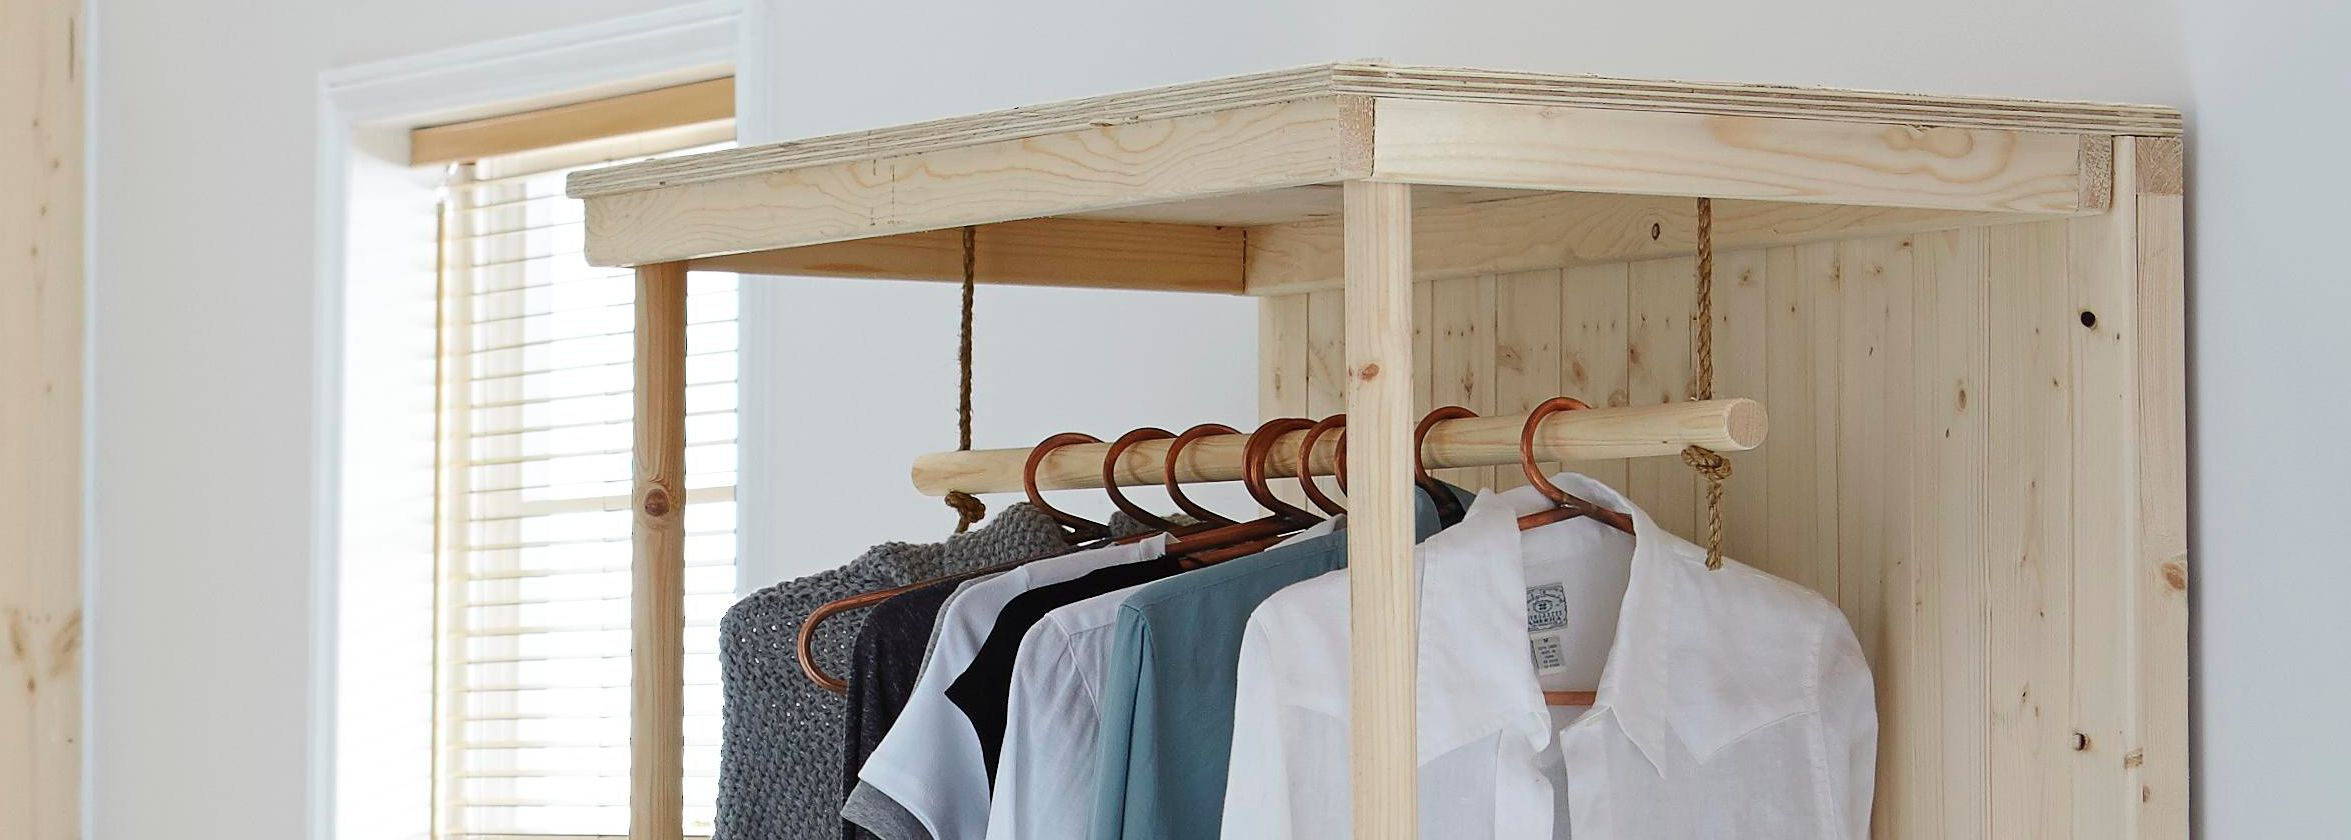 How To Make A Wardrobe Help Amp Ideas Diy At B Amp Q